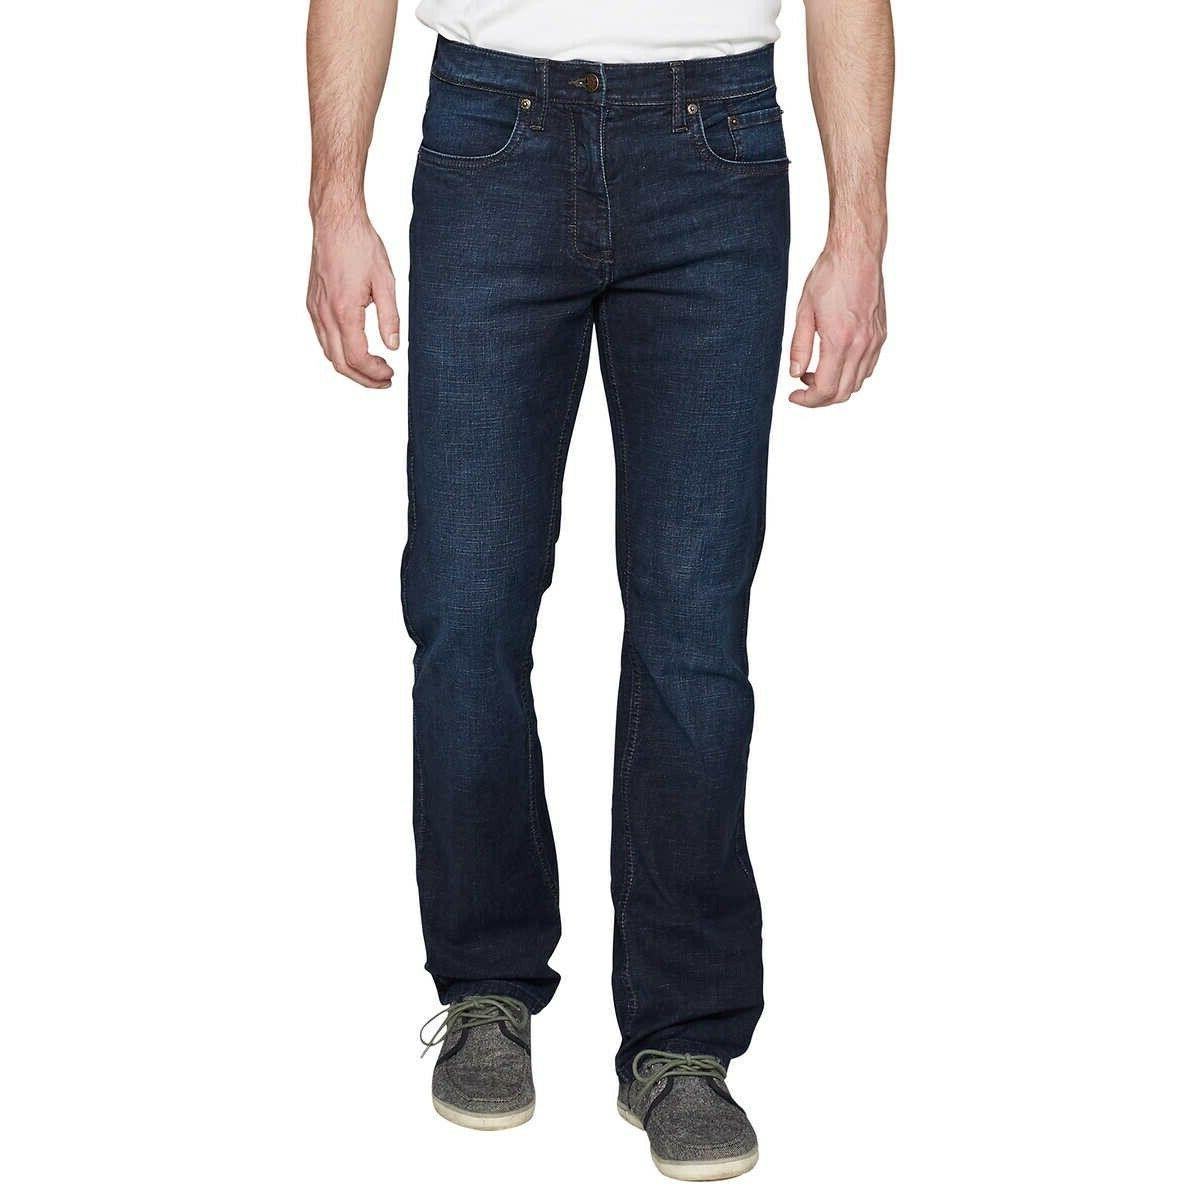 Urban Star Mens Wash Denim Pocket Jeans Pants Relaxed Fit